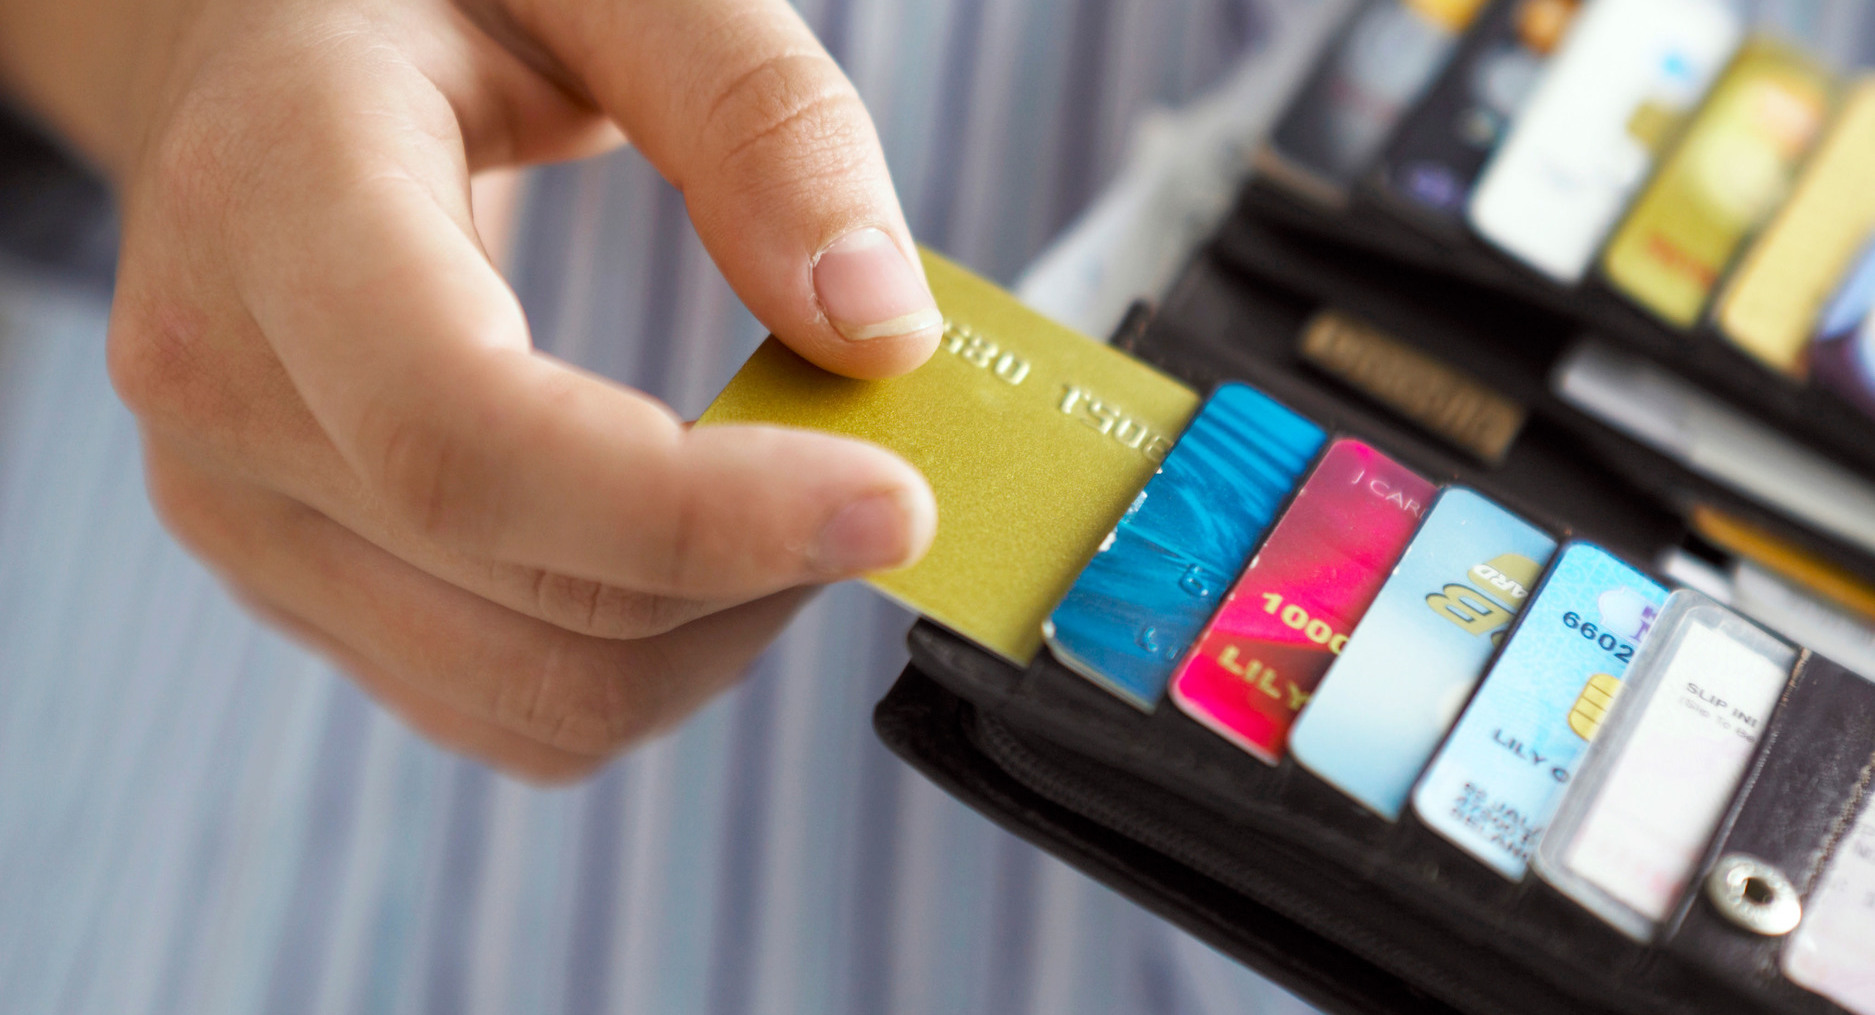 at0crt-close-up-on-woman-taking-credit-card-out-of-her-purse-2